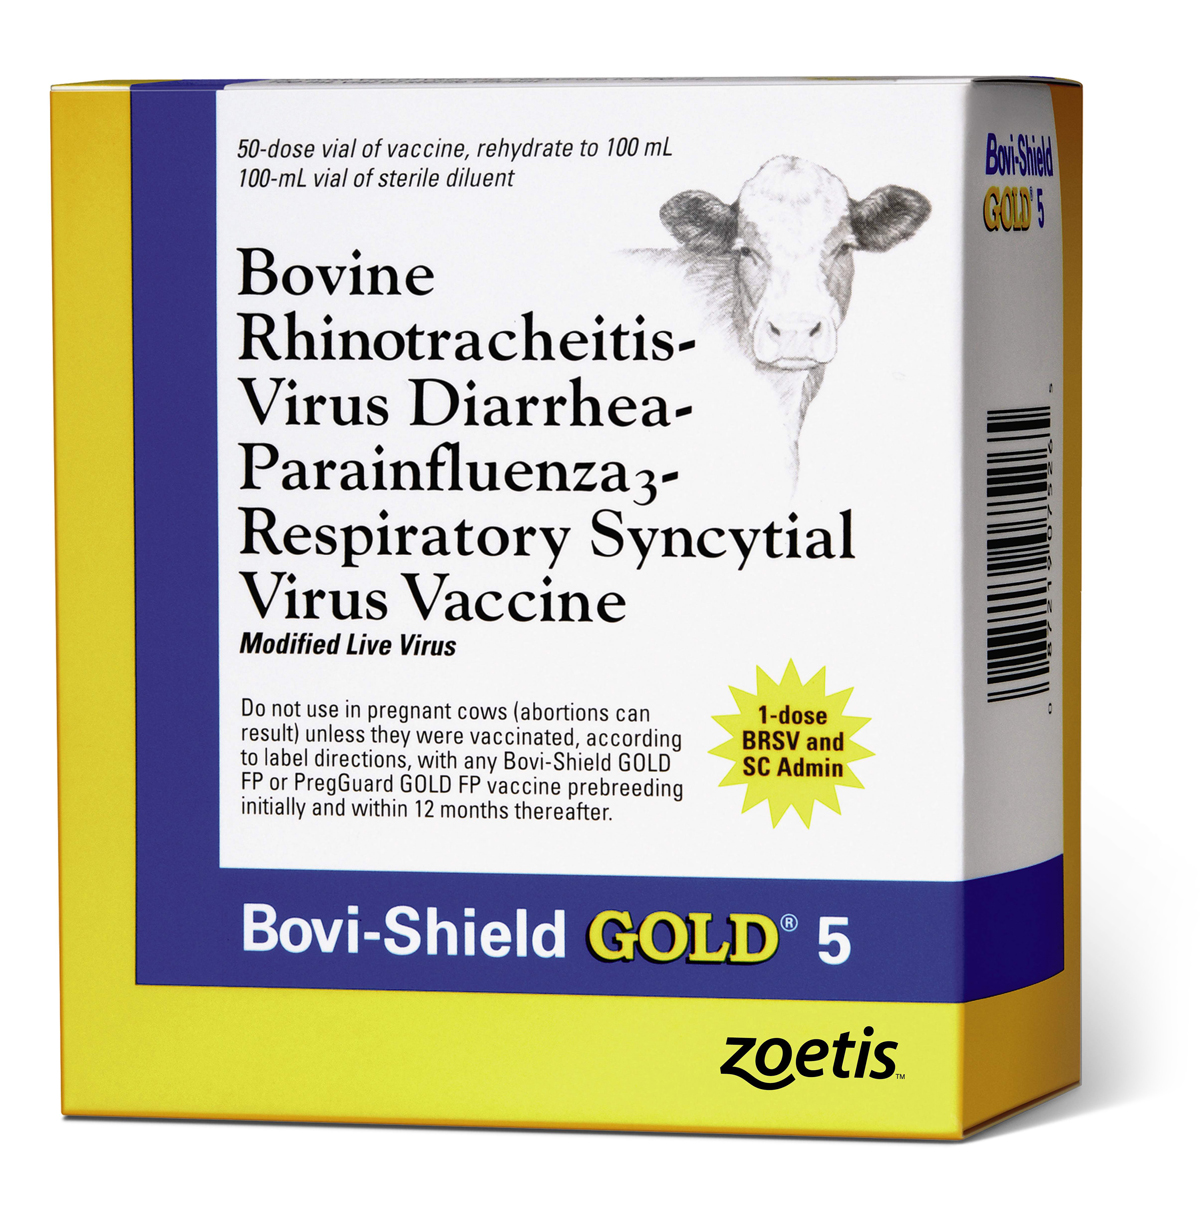 Bovi-Shield GOLD® 5 | Zoetis US